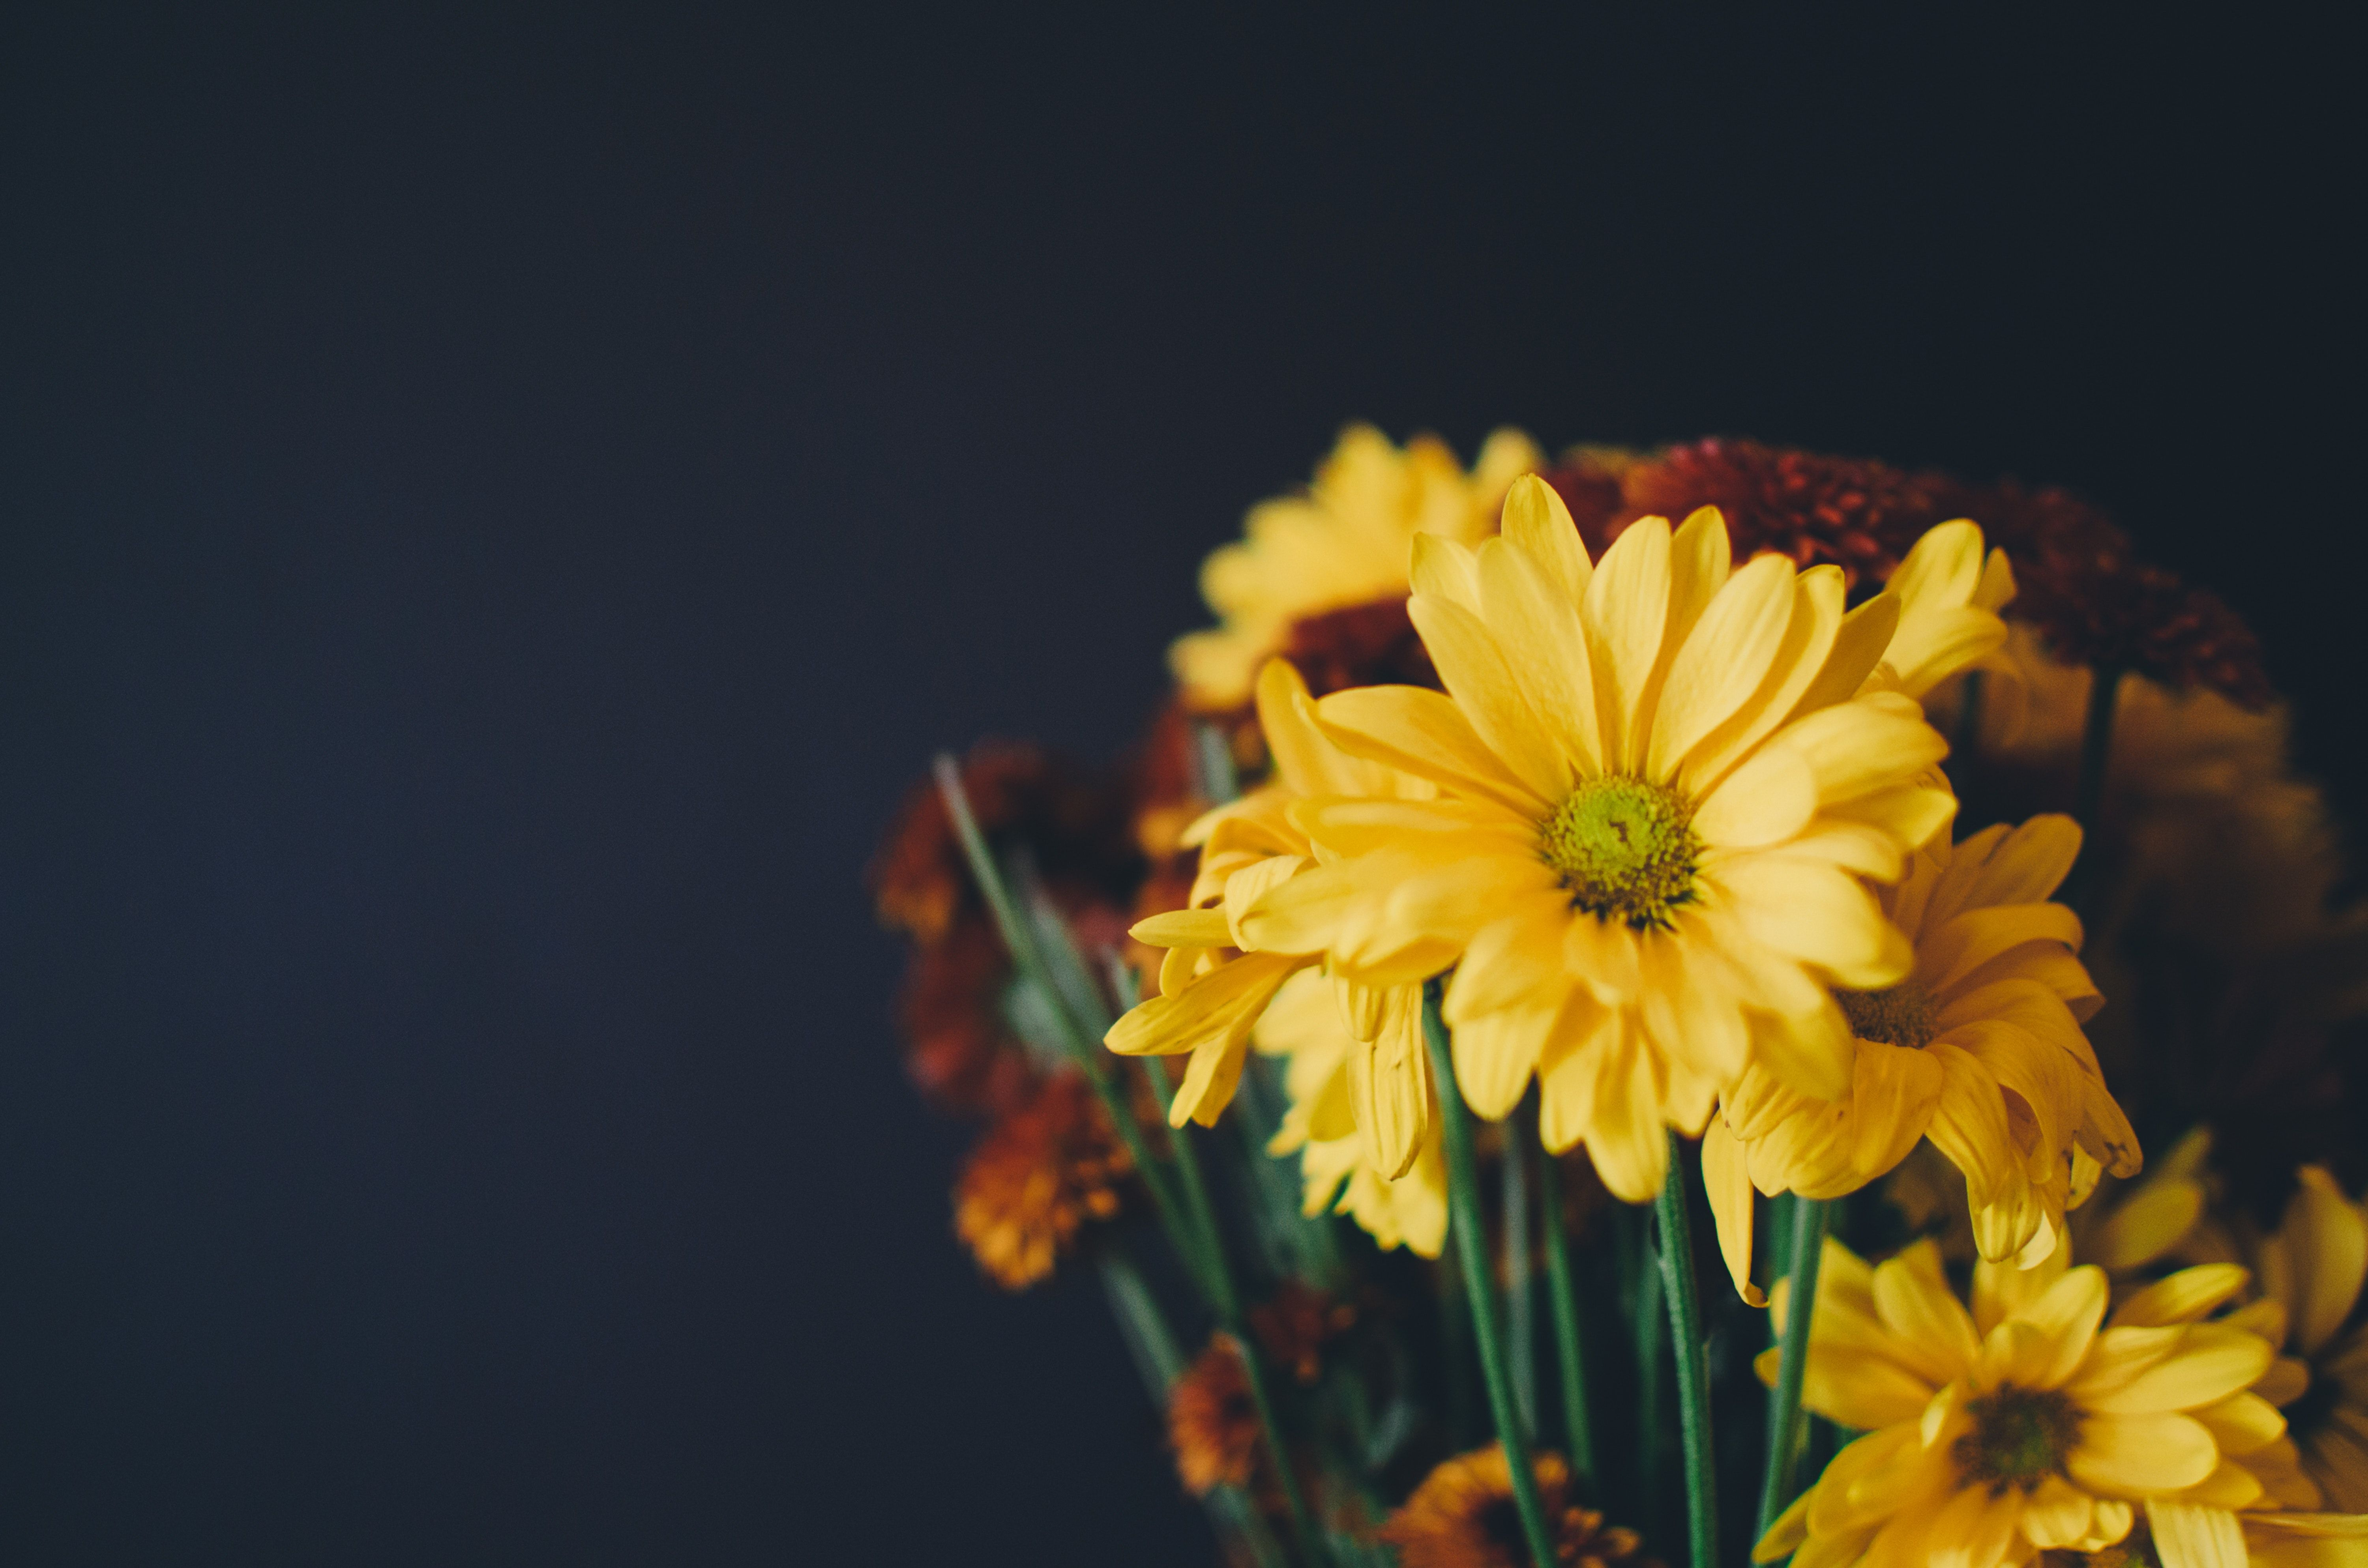 Close Up Of A Bouquet With Yellow Daisy Flowers Photography